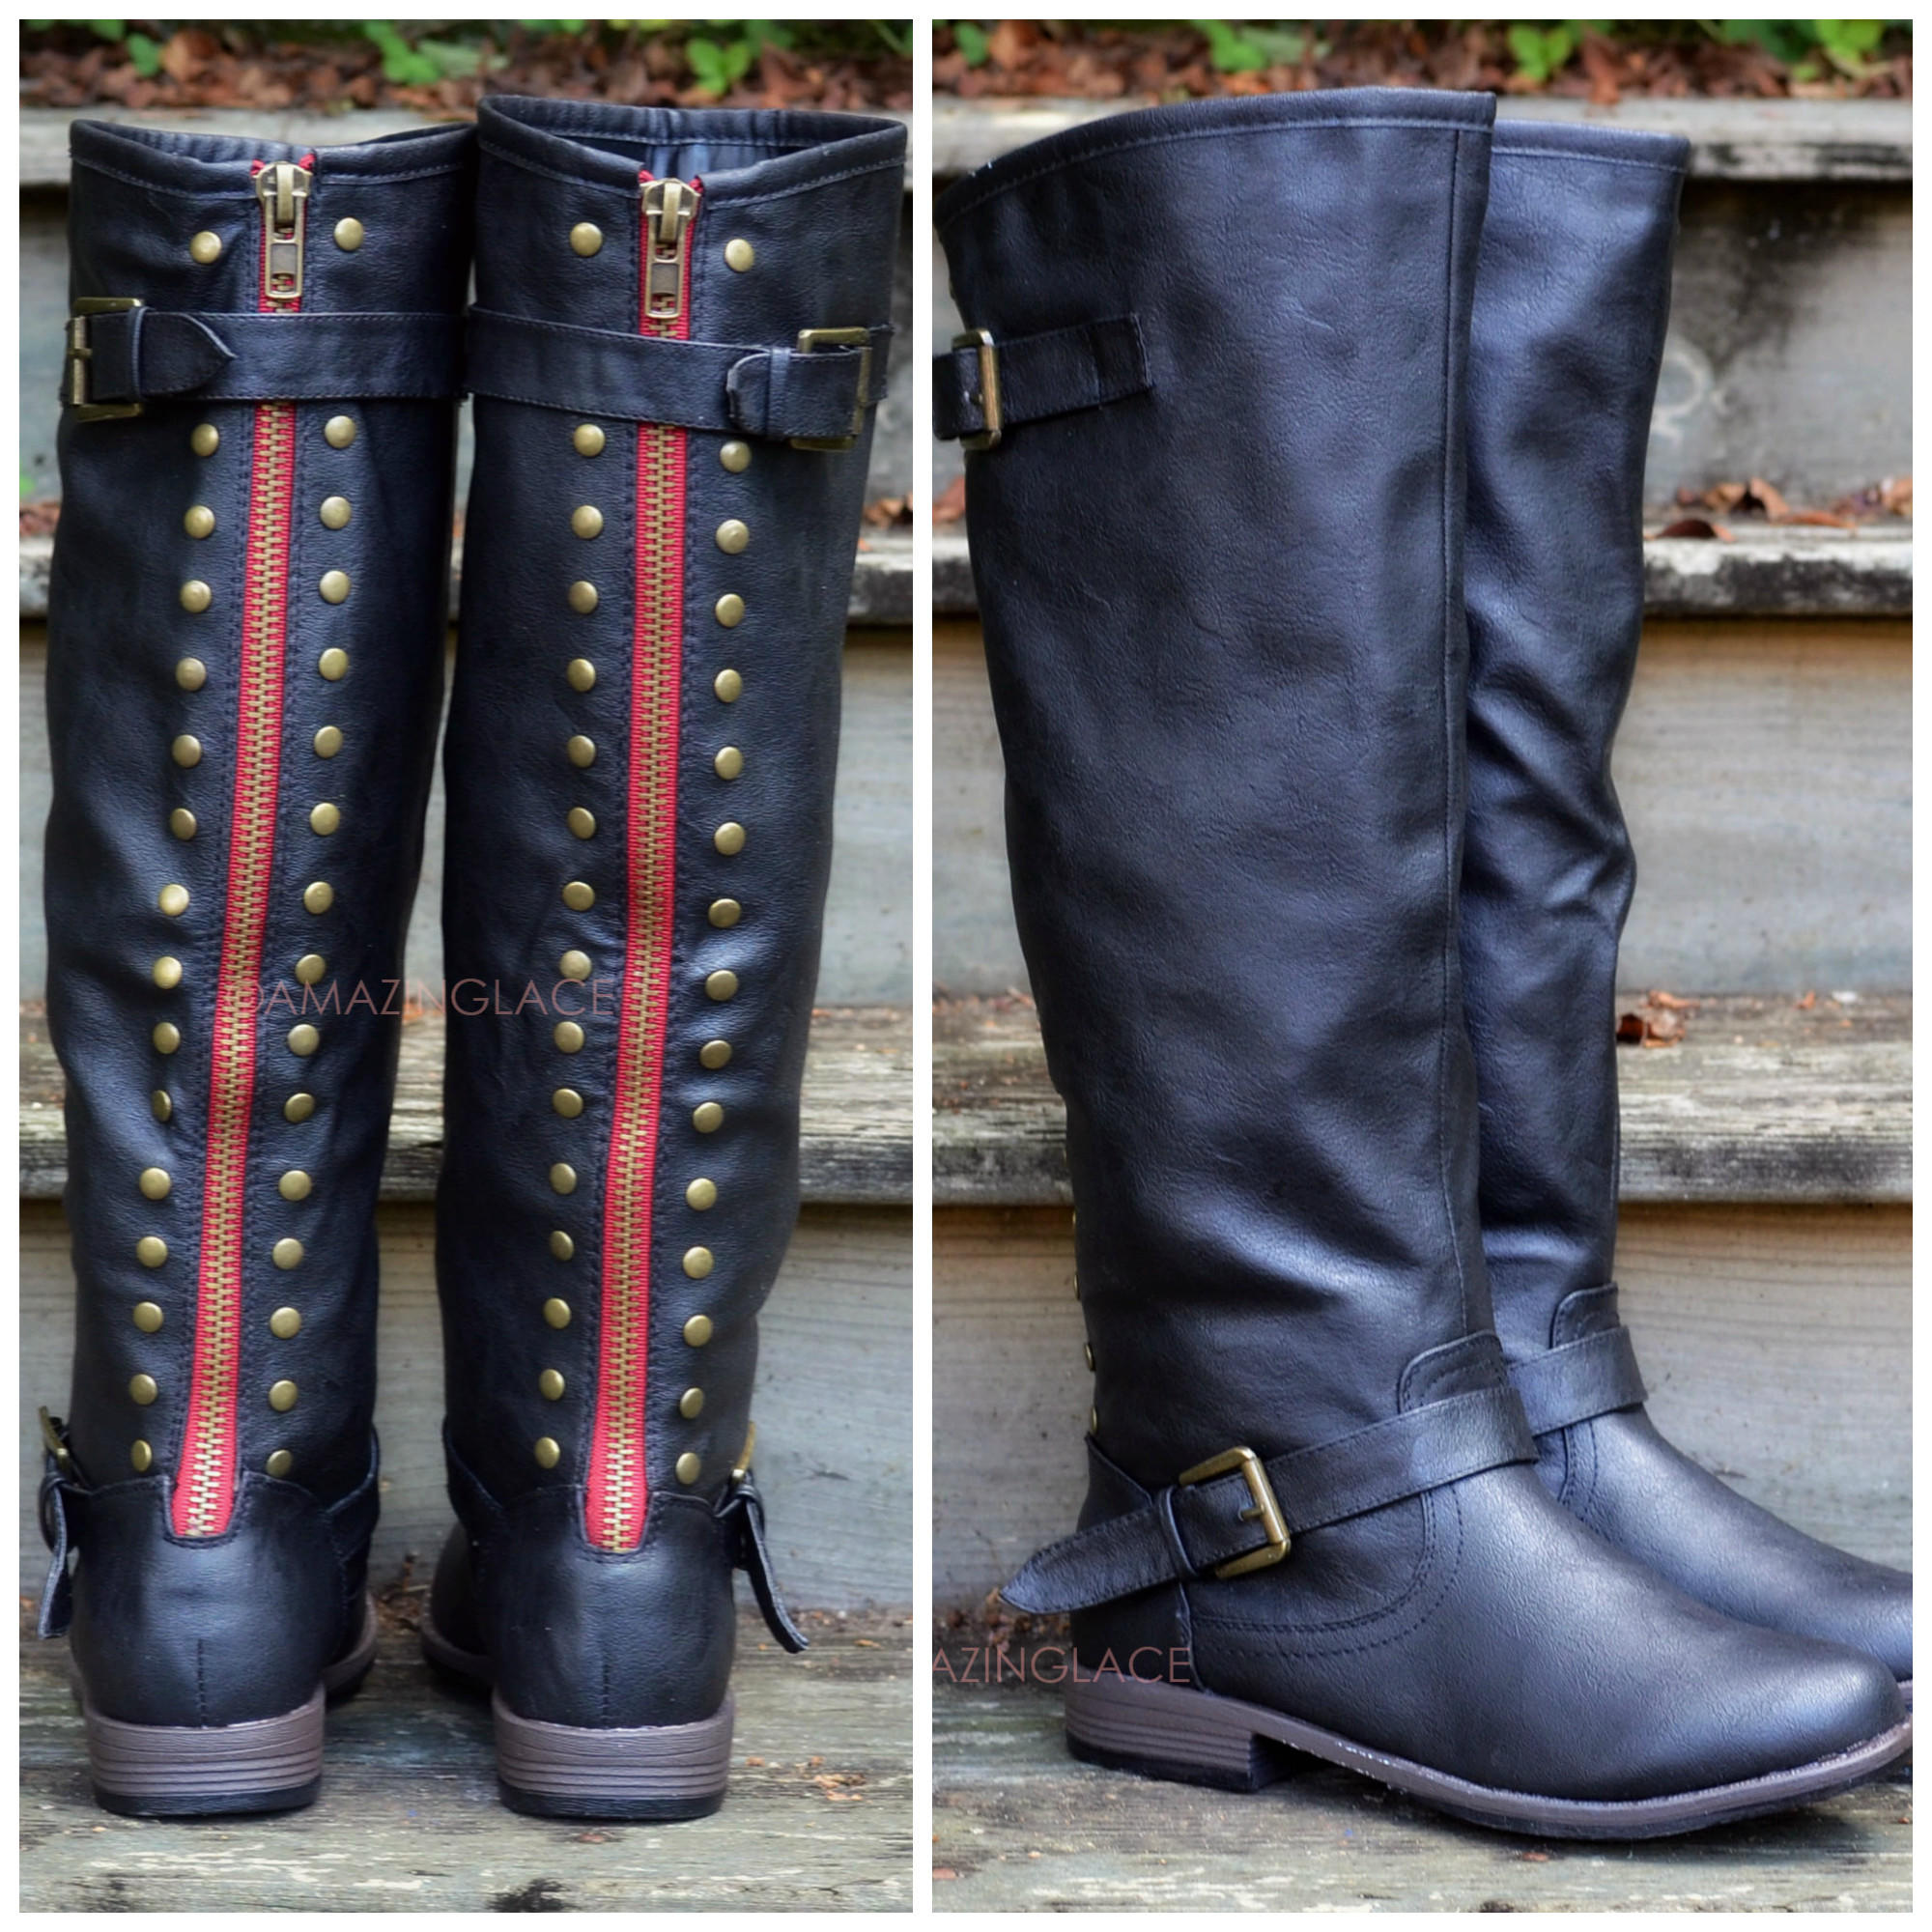 Black Boot With Red Zipper - Gommap Blog